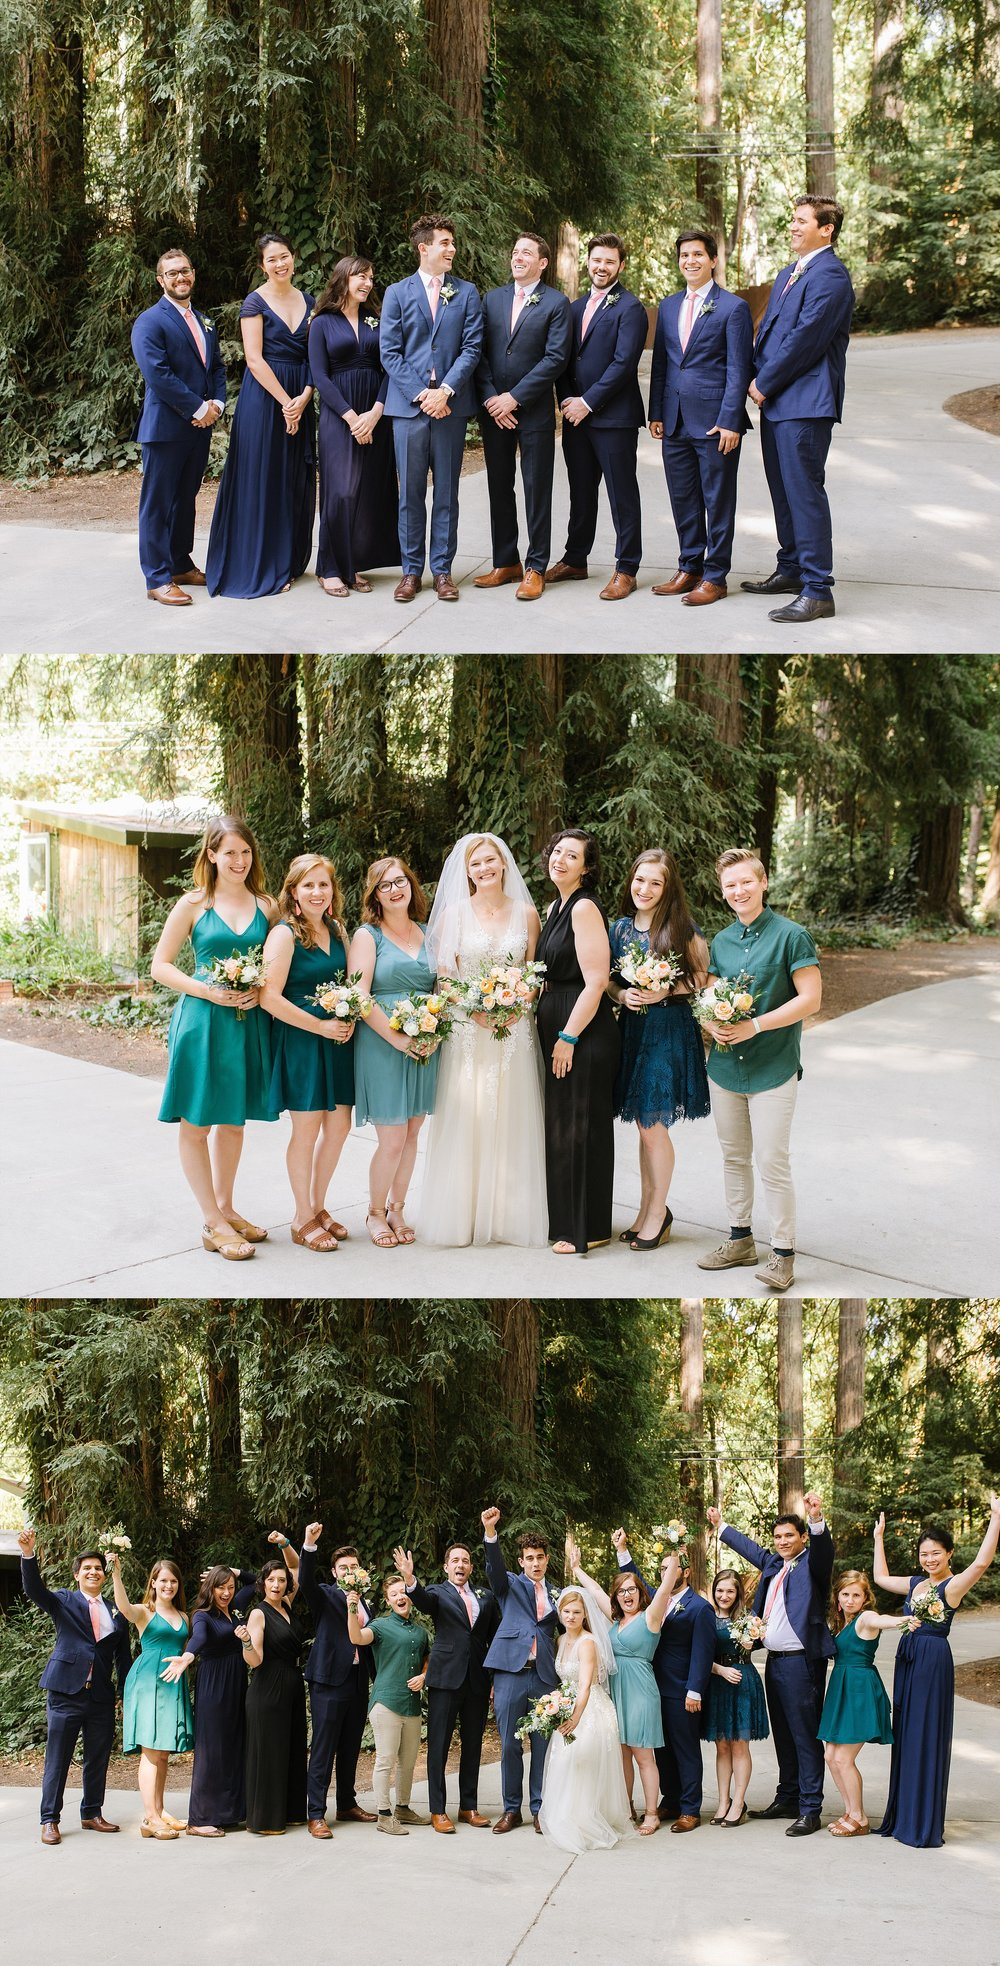 Amphitheatre-of-the-Redwoods-wedding-erikariley_chelsea-dier-photography_0056.jpg